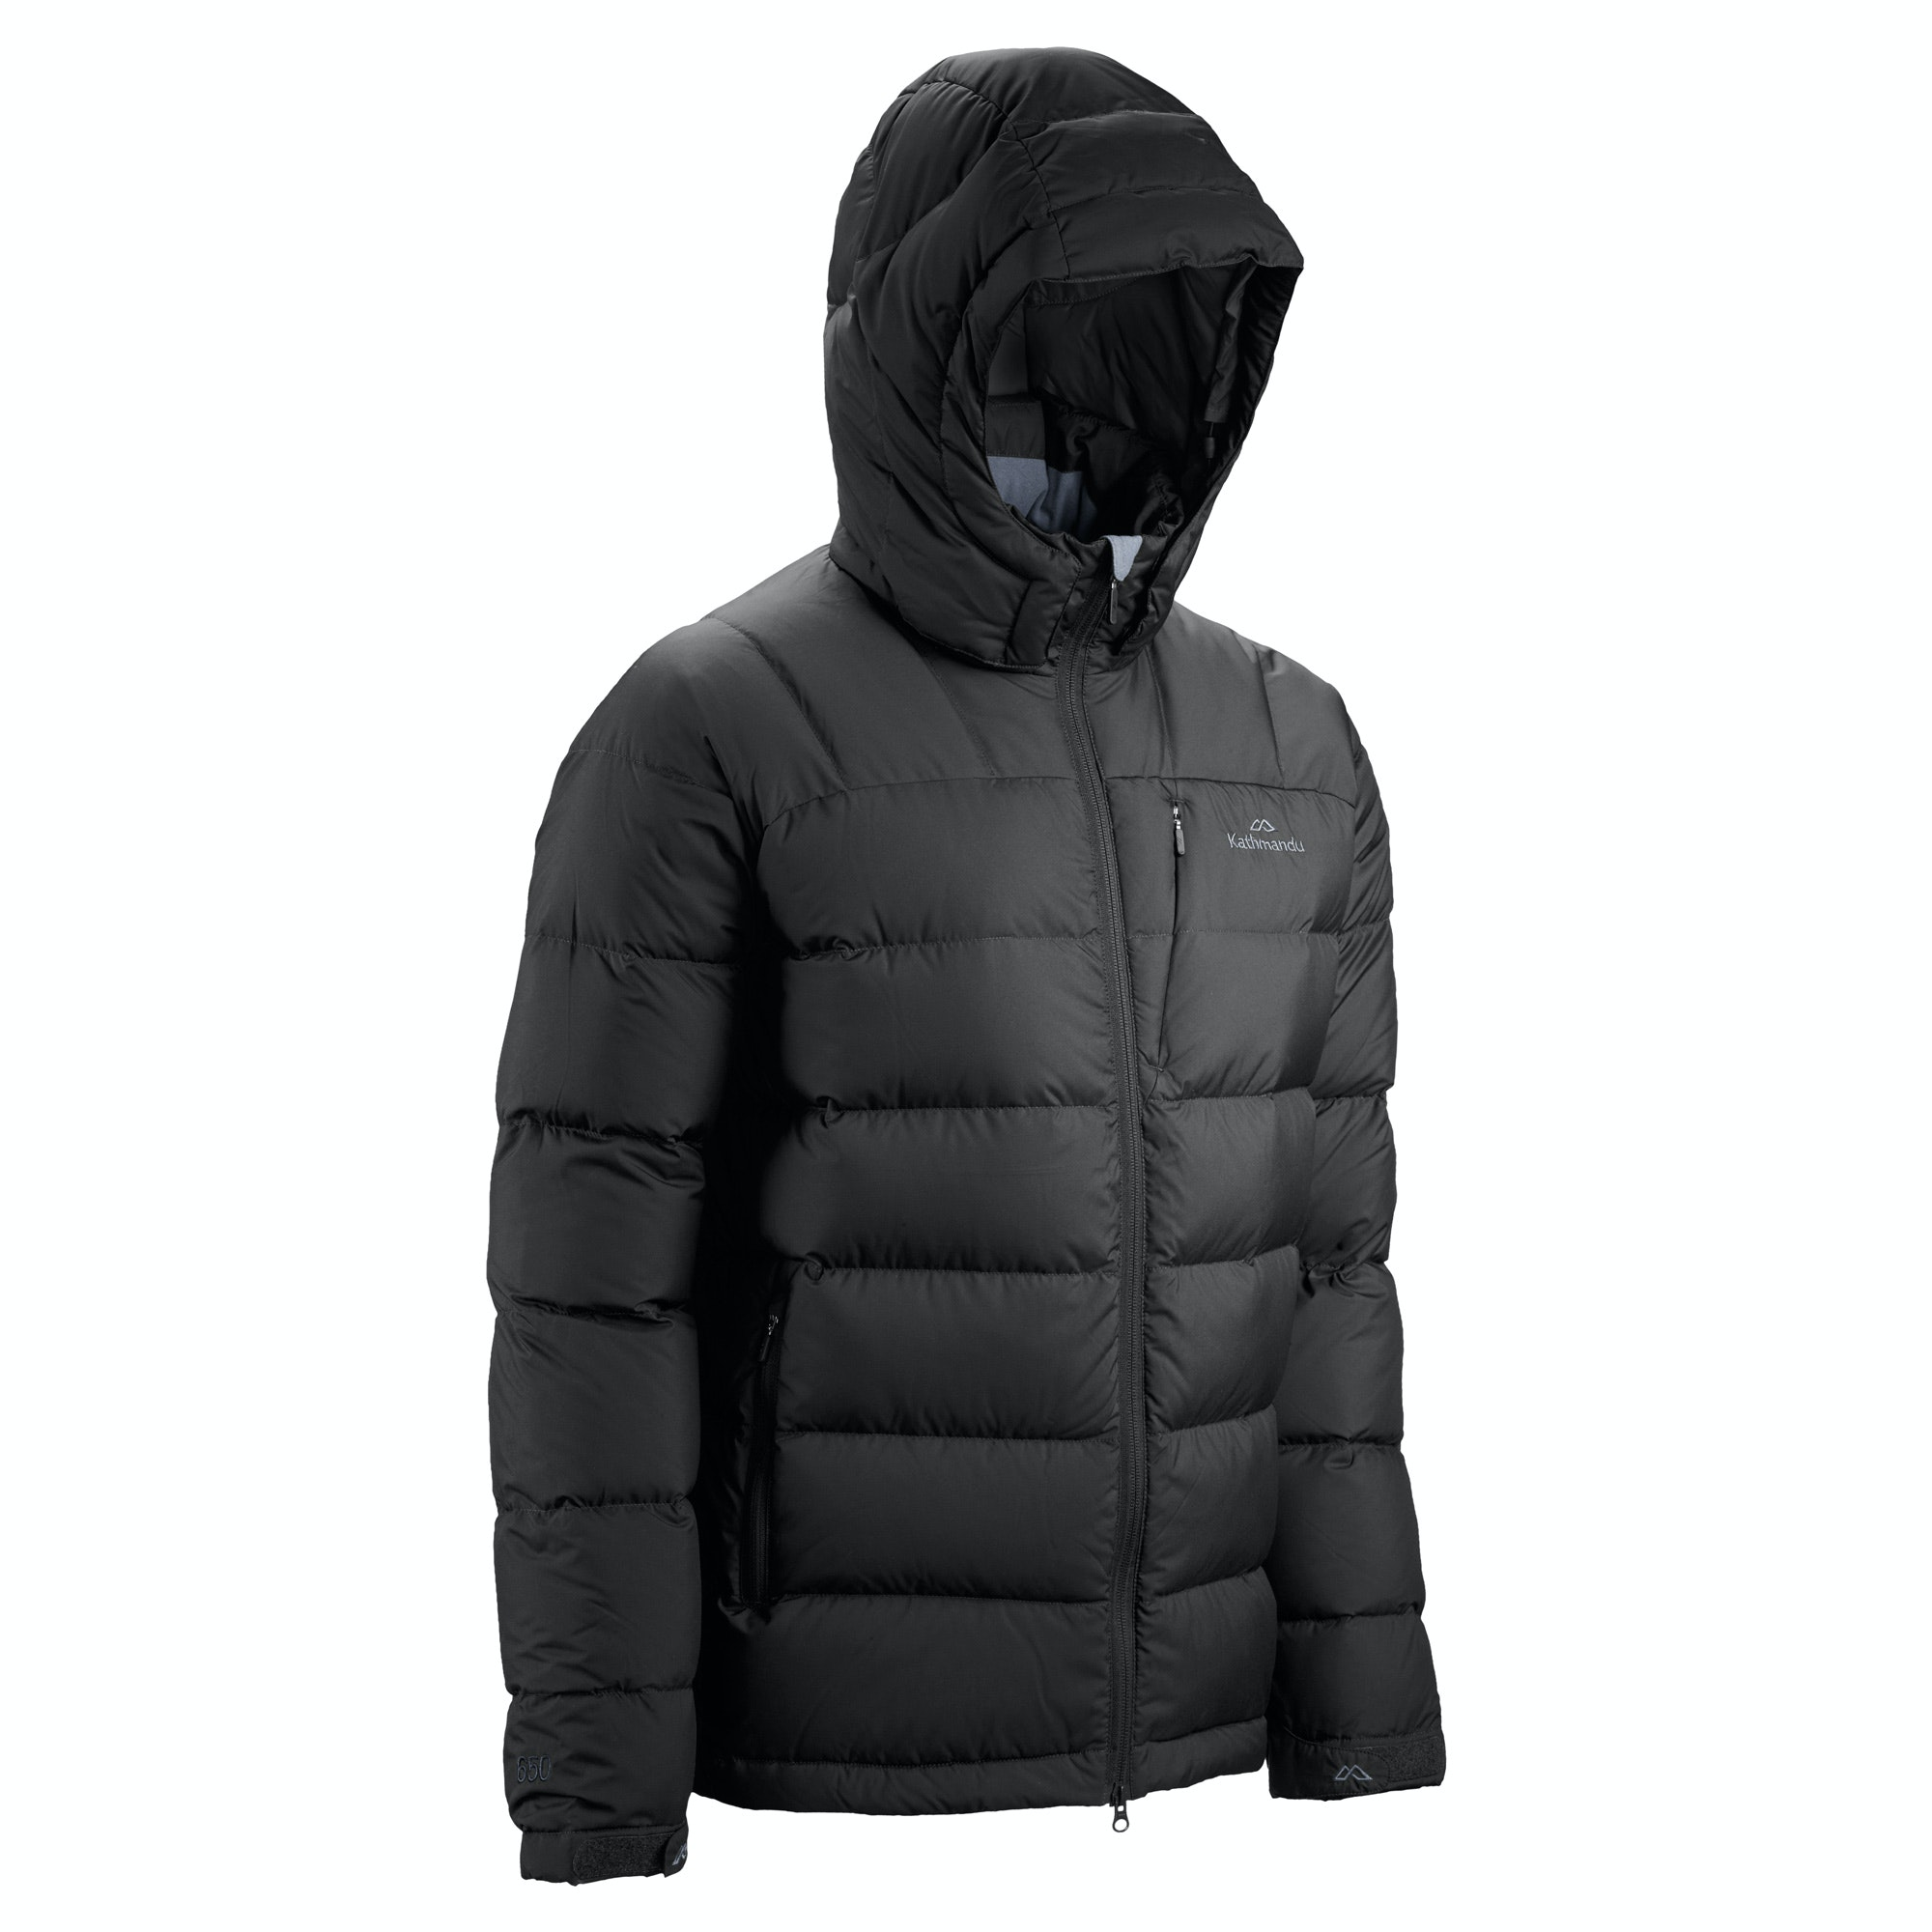 Shop eBay for great deals on Men's Puffer Coats and Jackets. You'll find new or used products in Men's Puffer Coats and Jackets on eBay. Free shipping on selected items. Men Packable Down Jacket Hooded Winter Puffer Outerwear Ultralight Sport Outcoat. $ NWT Polo Ralph Lauren MENS DOWN PUFFER COAT JACKET/ L #